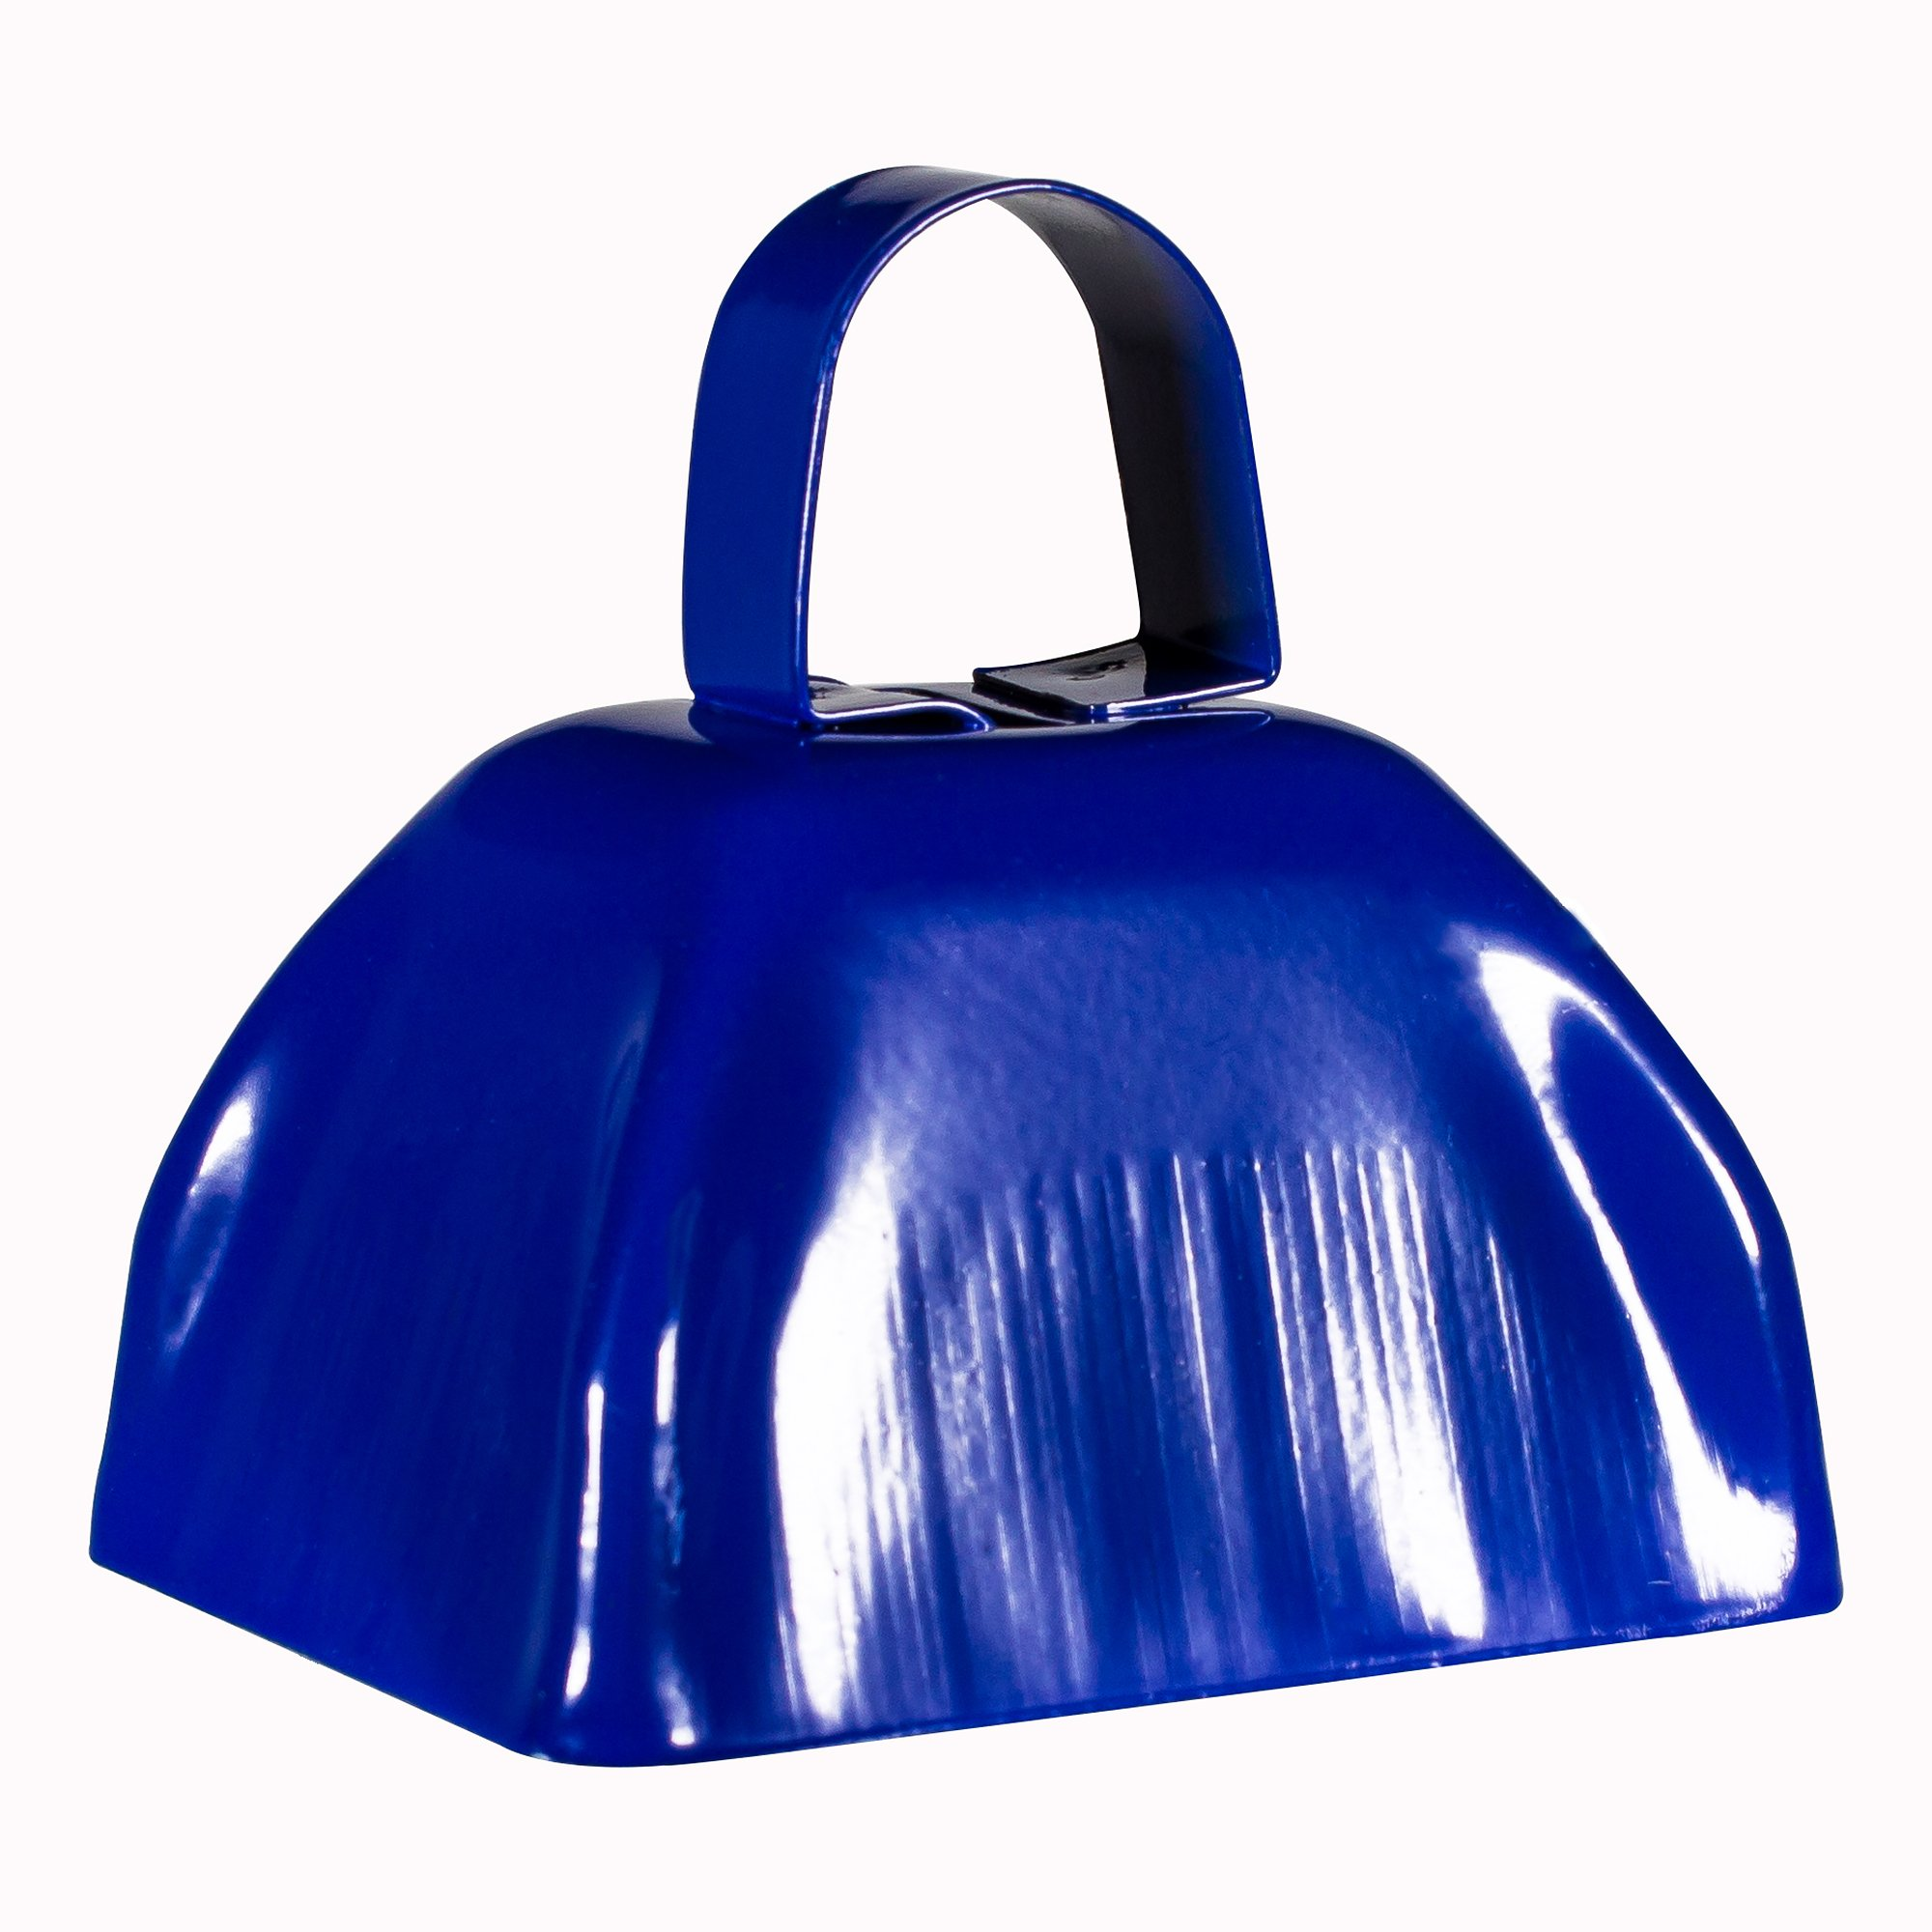 Metal Cowbells with Handles 3 inch Novelty Noise Maker - 12 Pack (Blue)